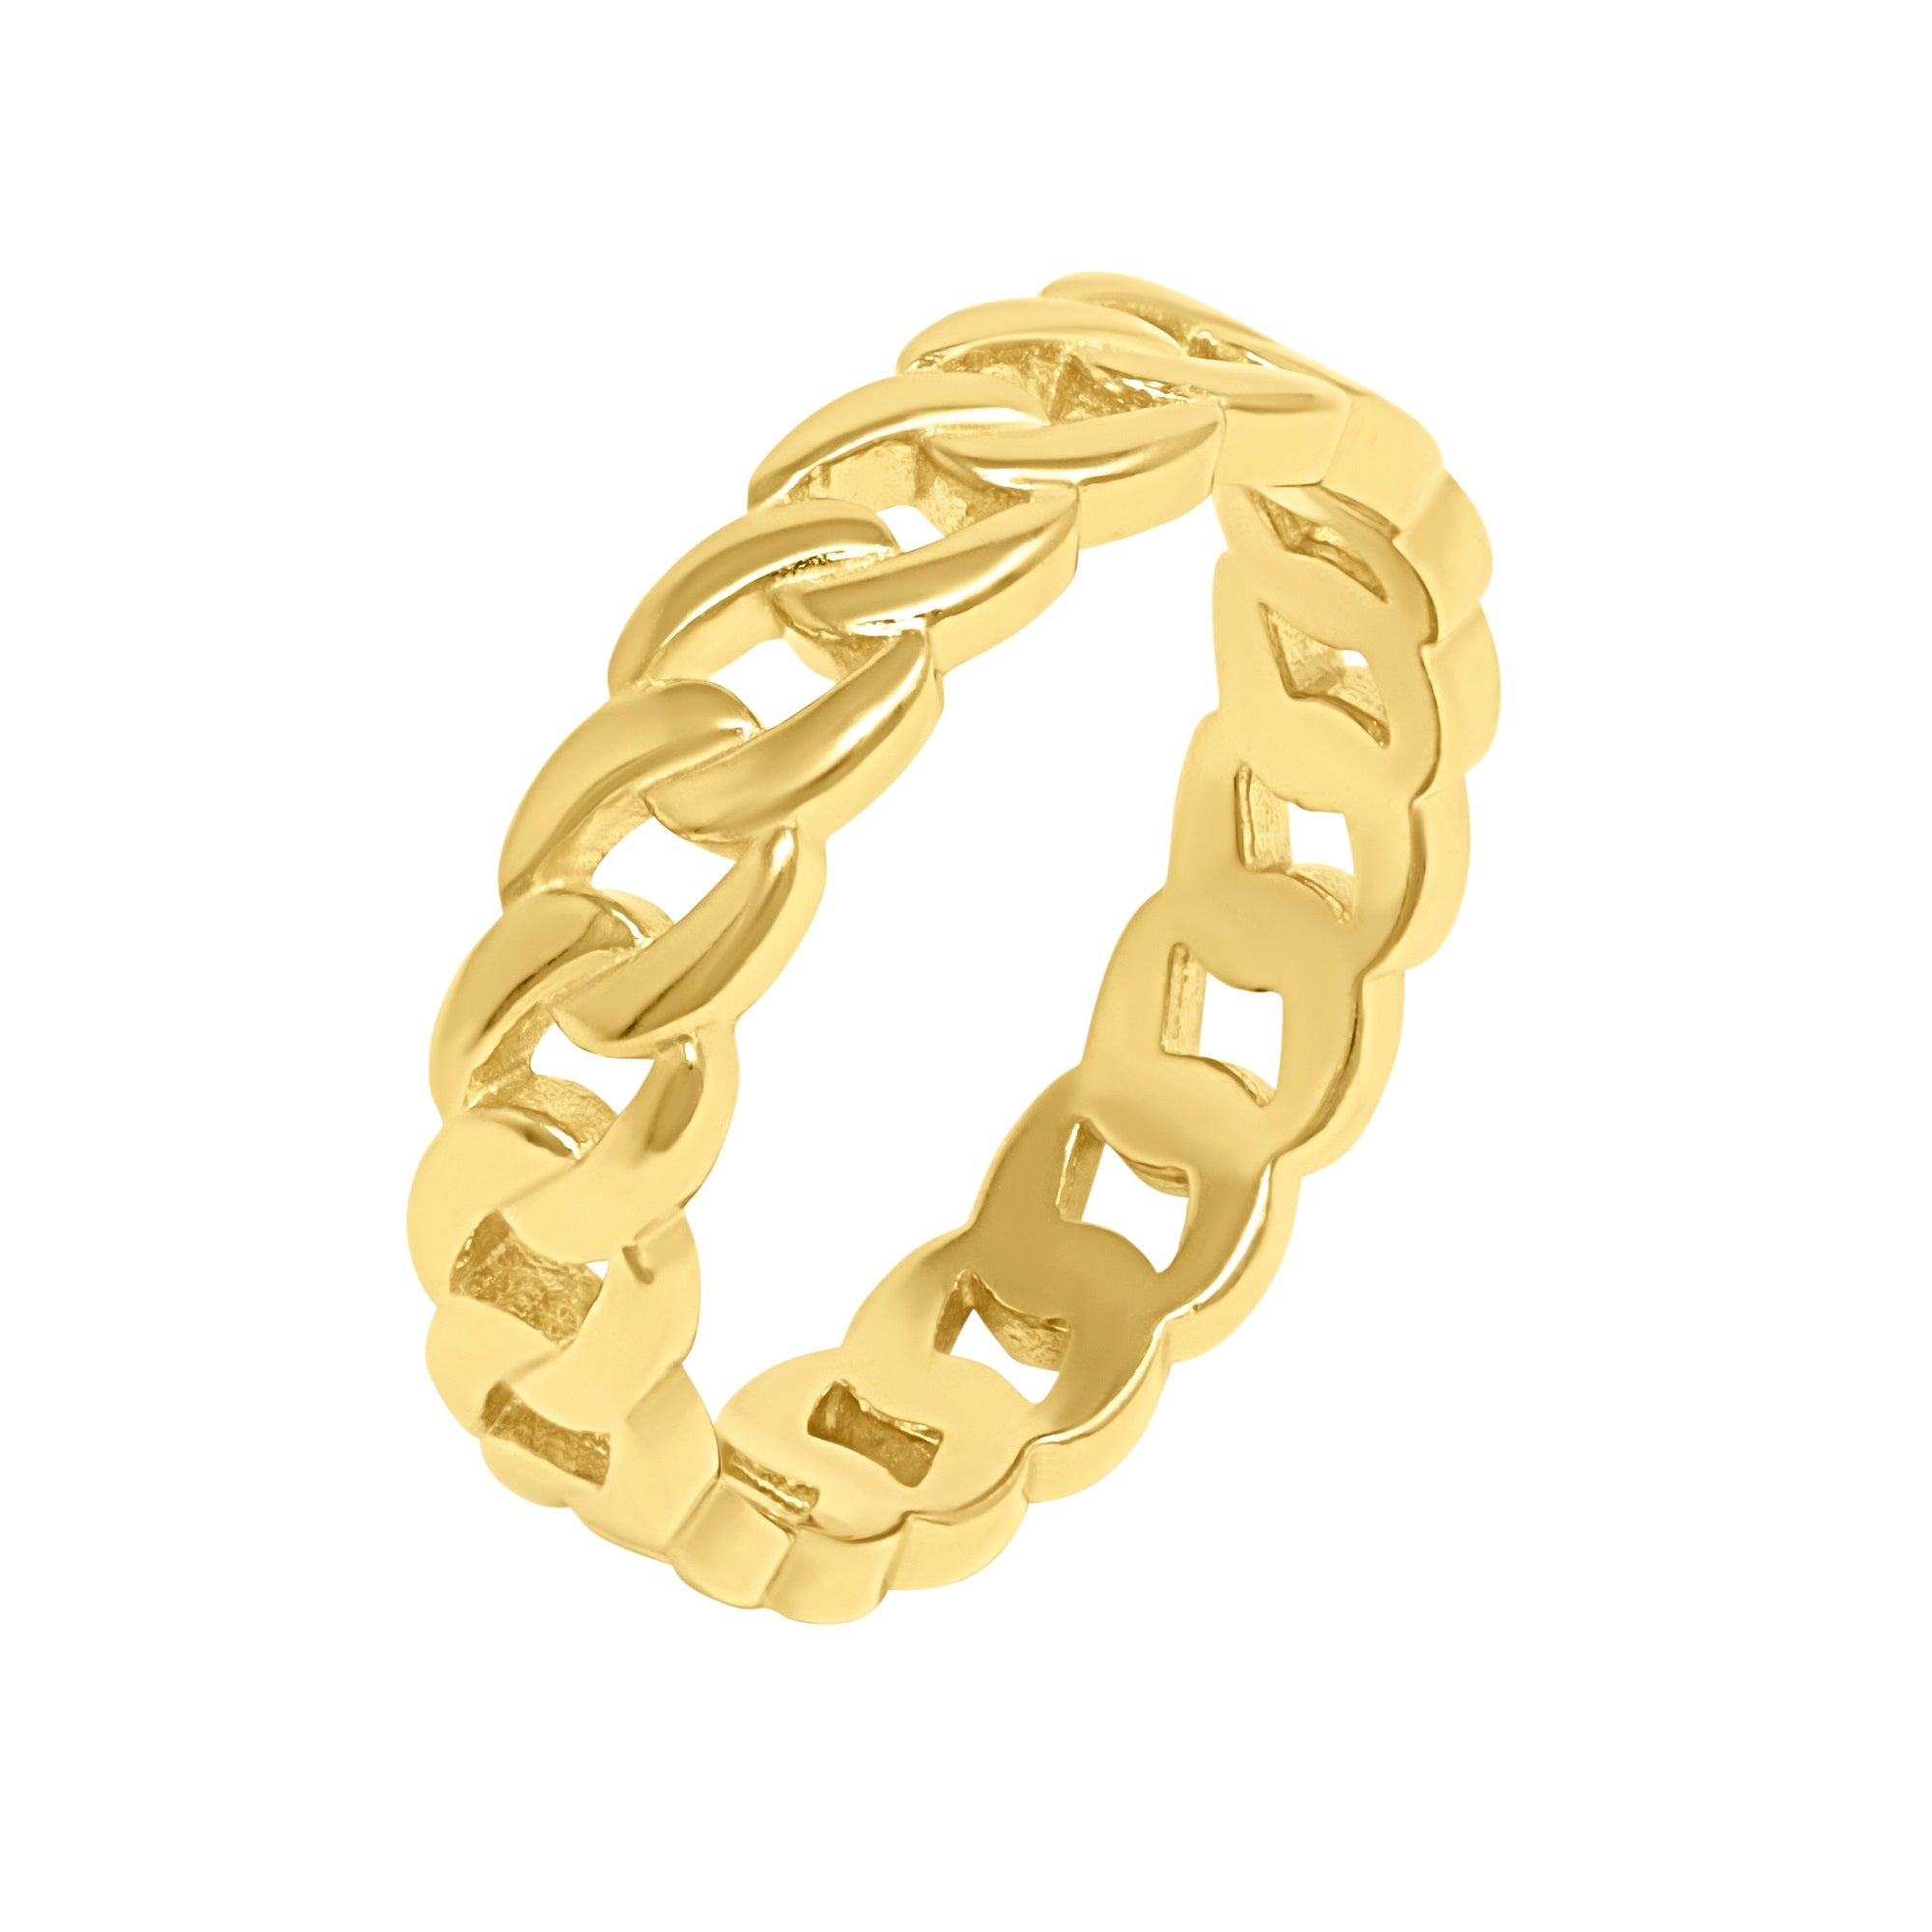 Chain Link Ring - Yellow Gold - Voare